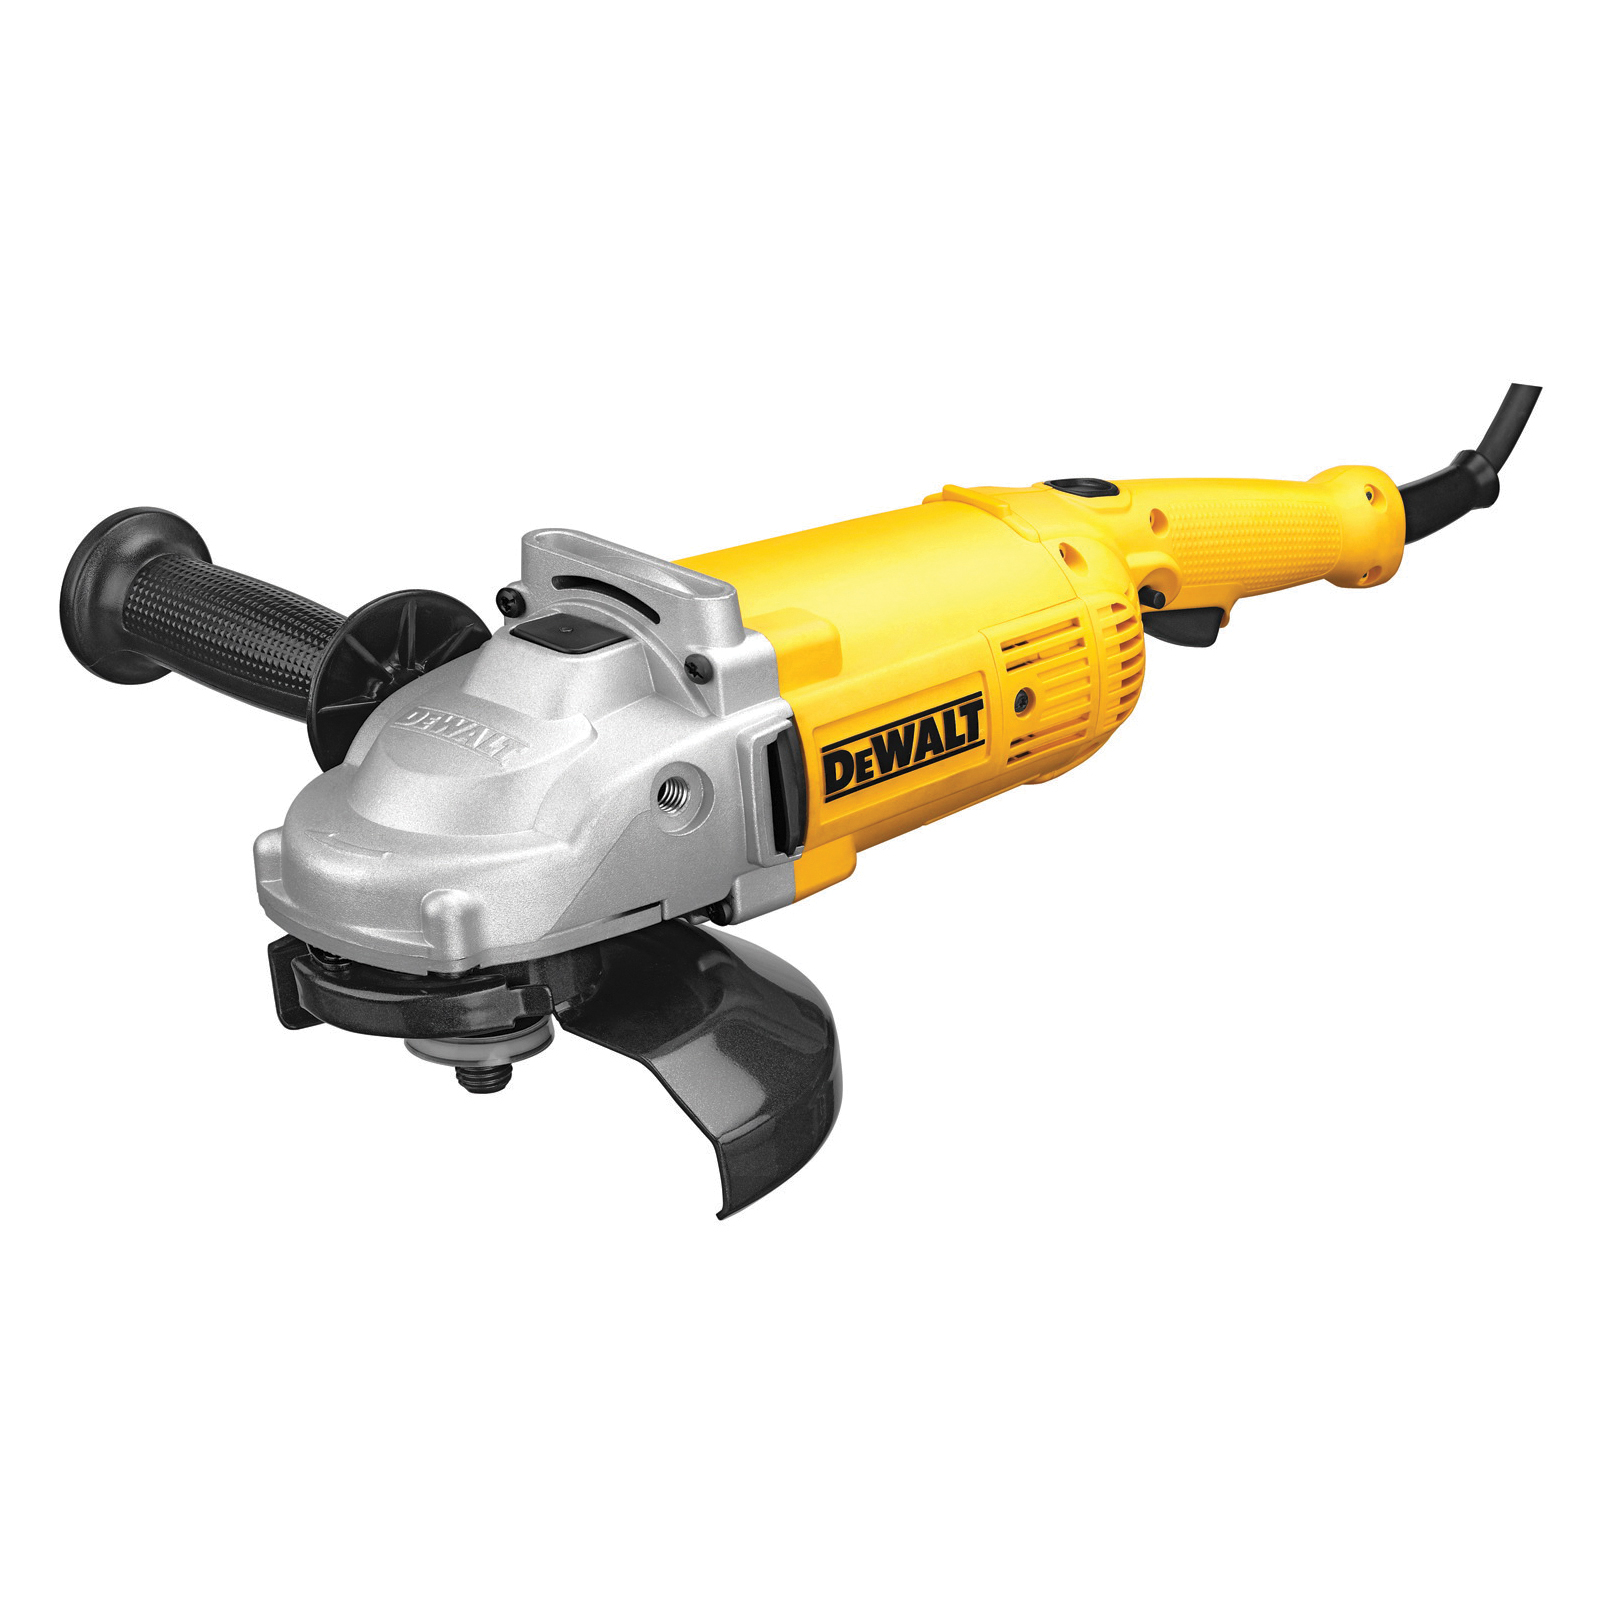 DeWALT® DWE4517 Large Angle Grinder, 7 in Dia Wheel, 5/8-11 Arbor/Shank, 120 VAC, Yellow, Lock-ON/OFF Trigger Switch